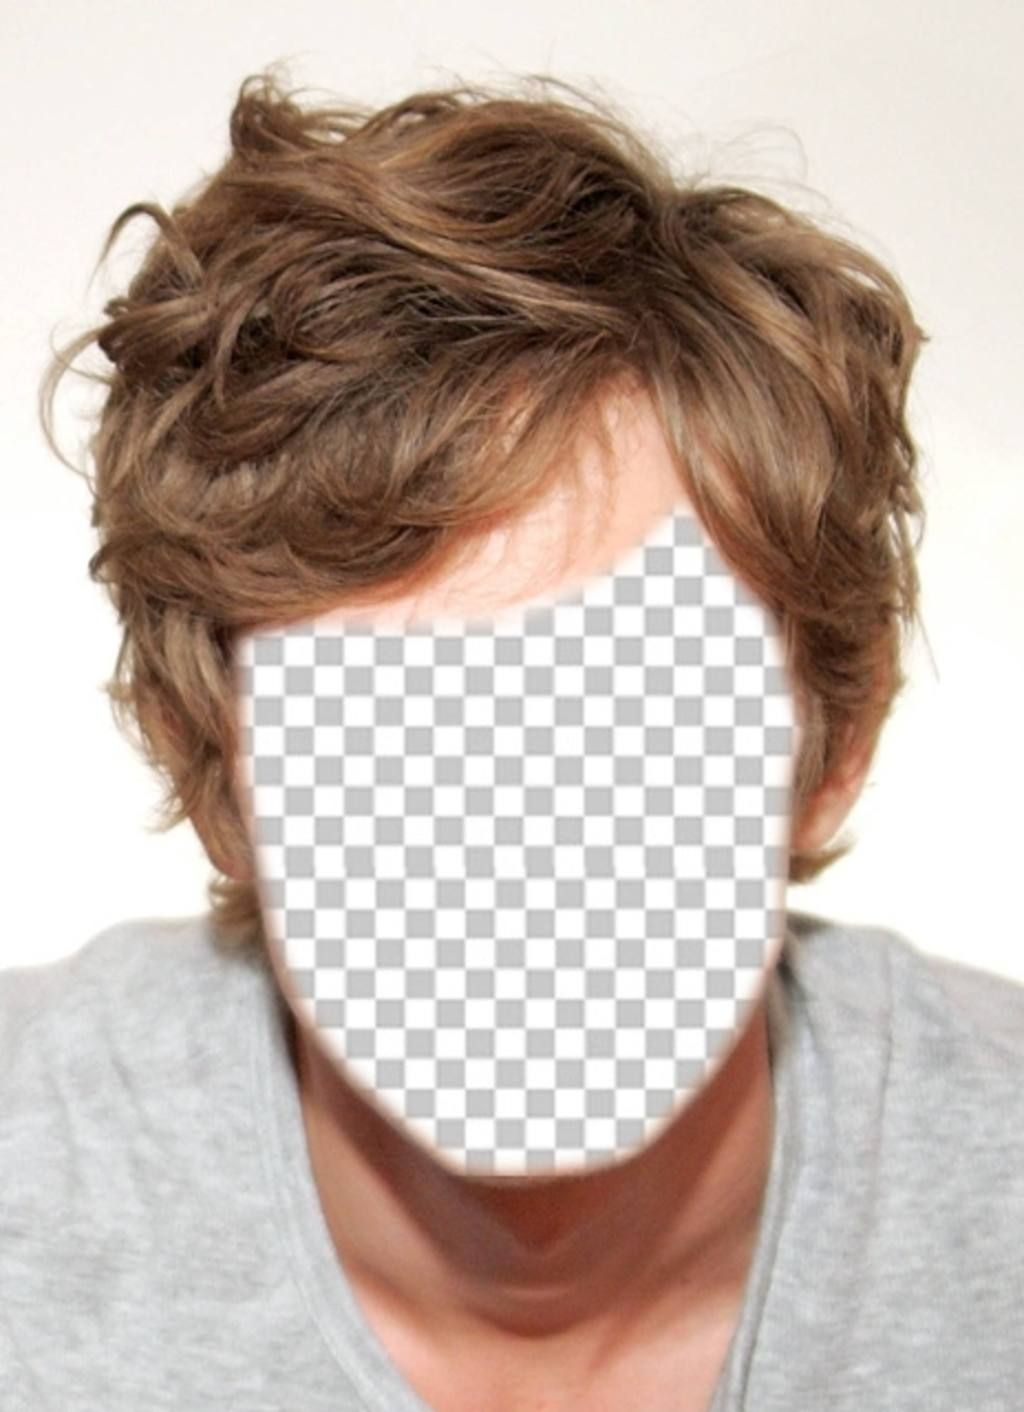 Free photomontage for men and to change the hair to blond